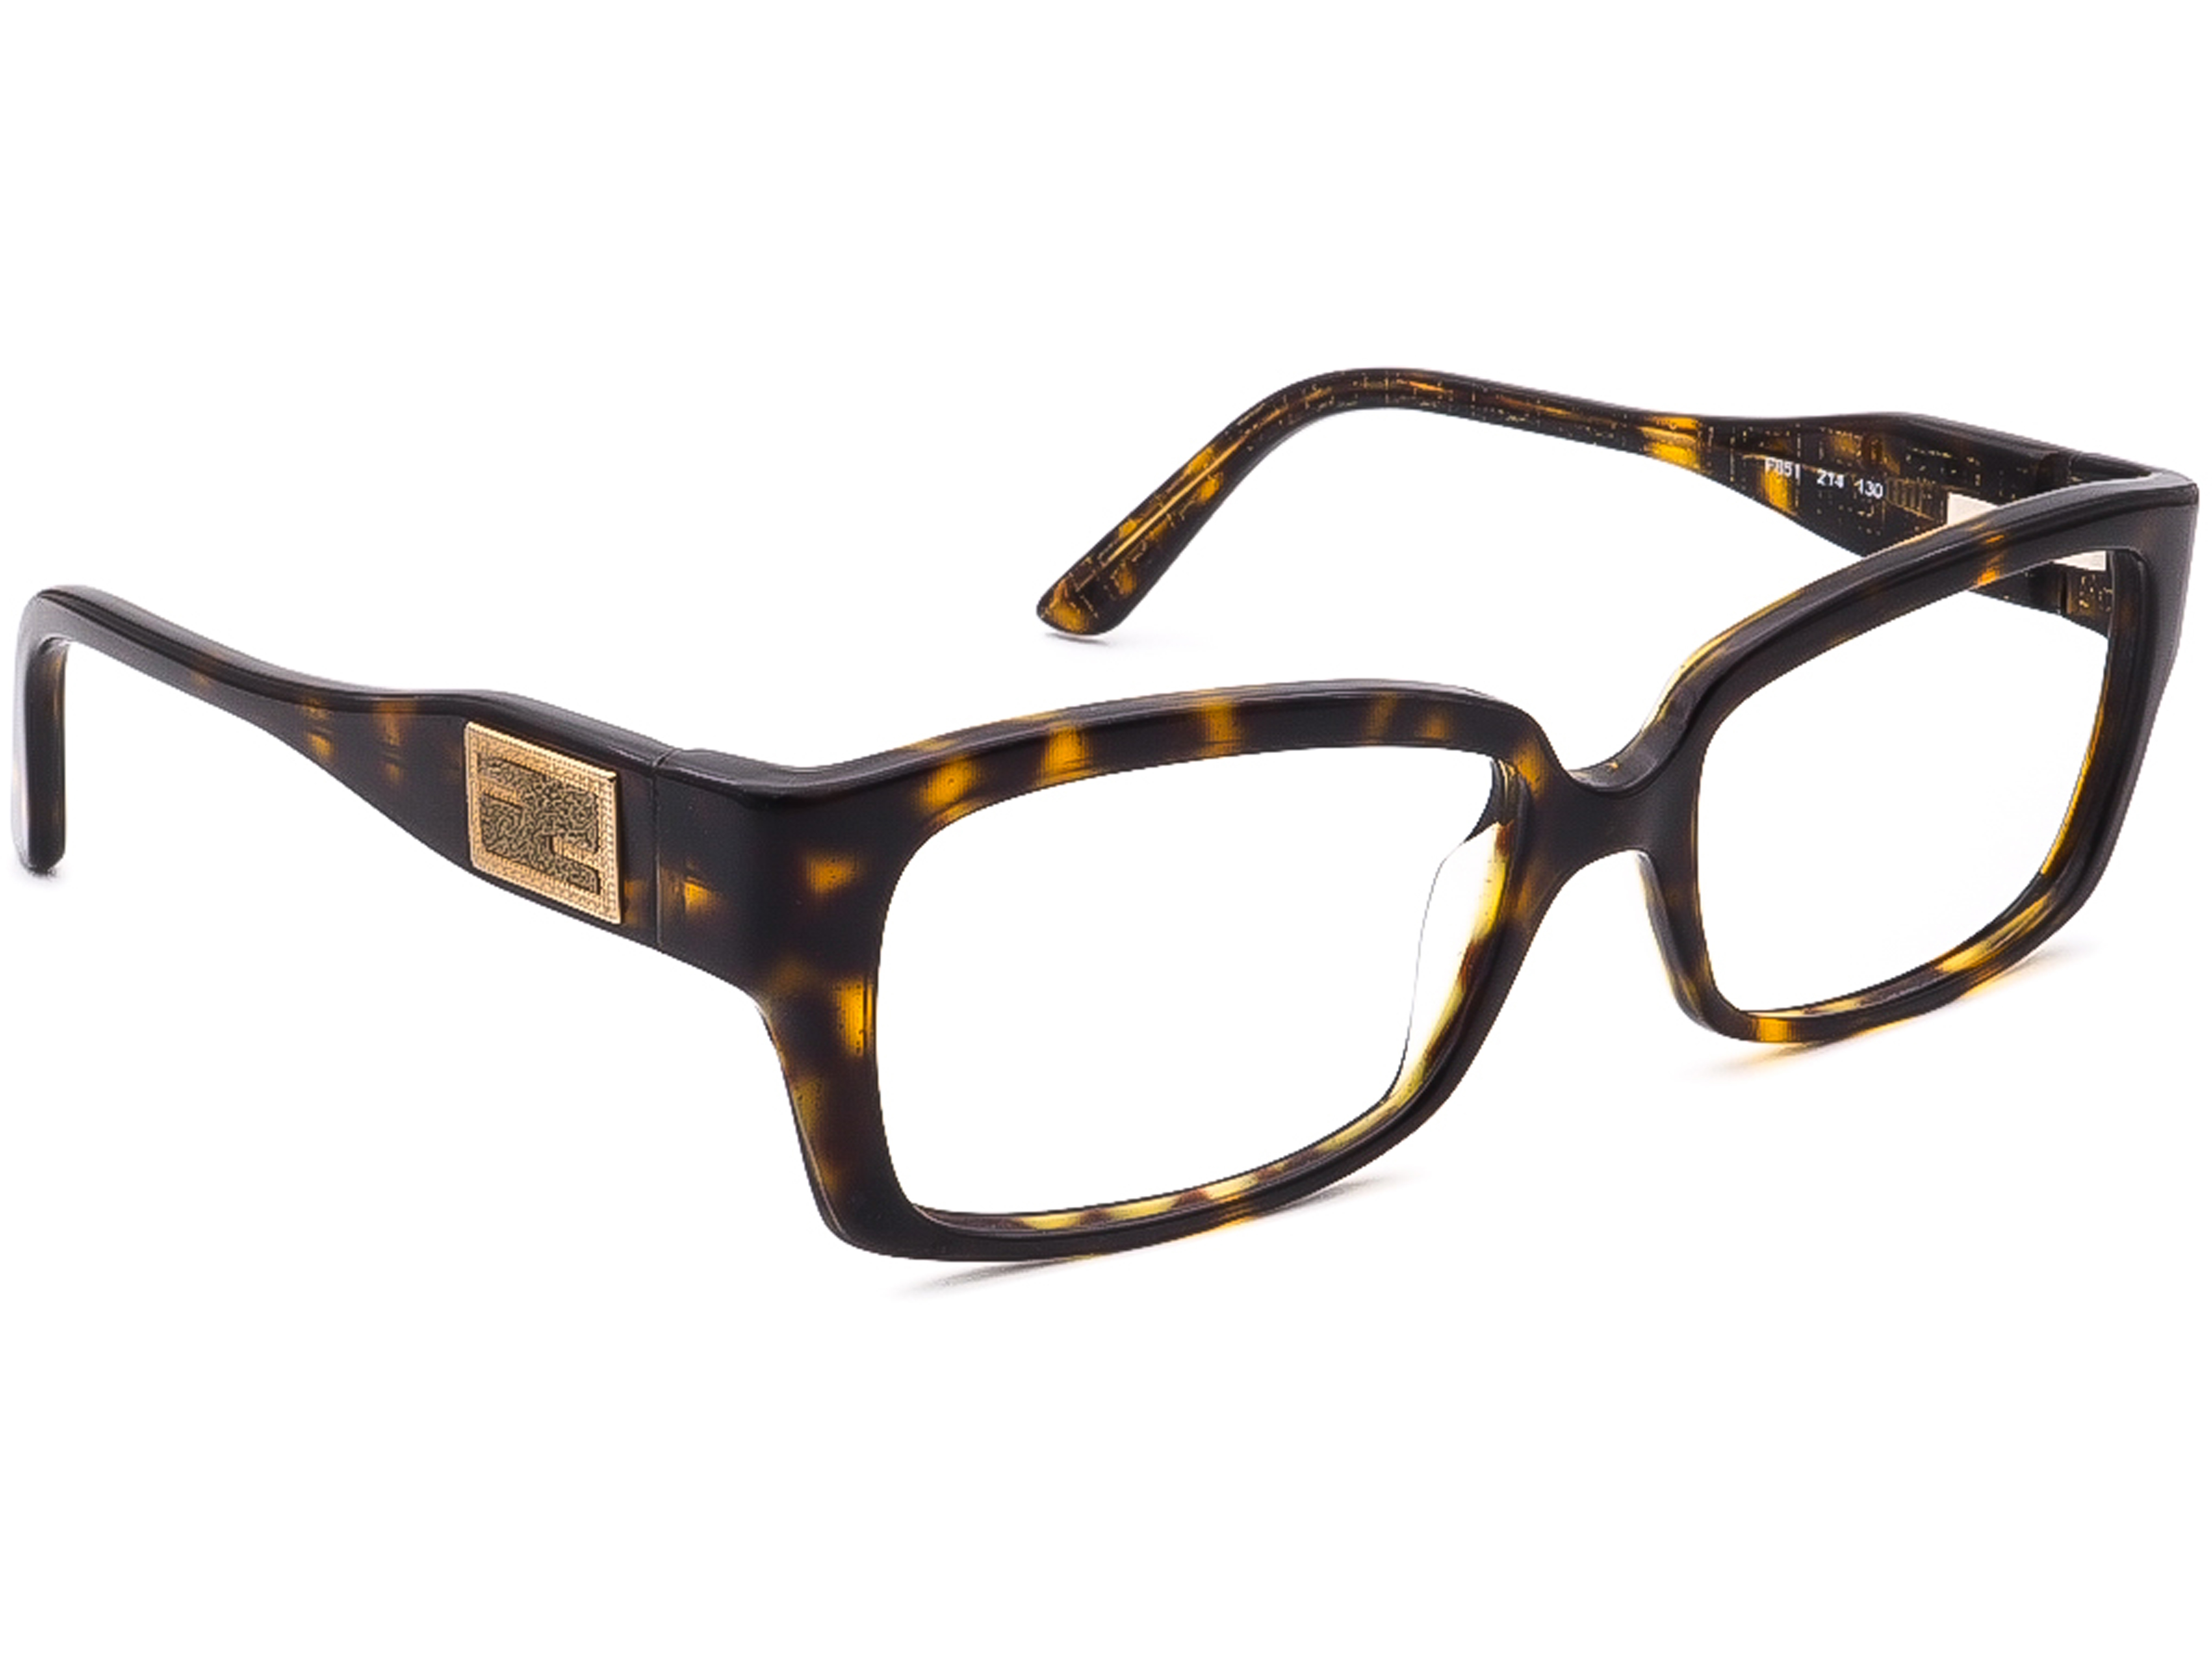 Fendi F851 214 Eyeglasses